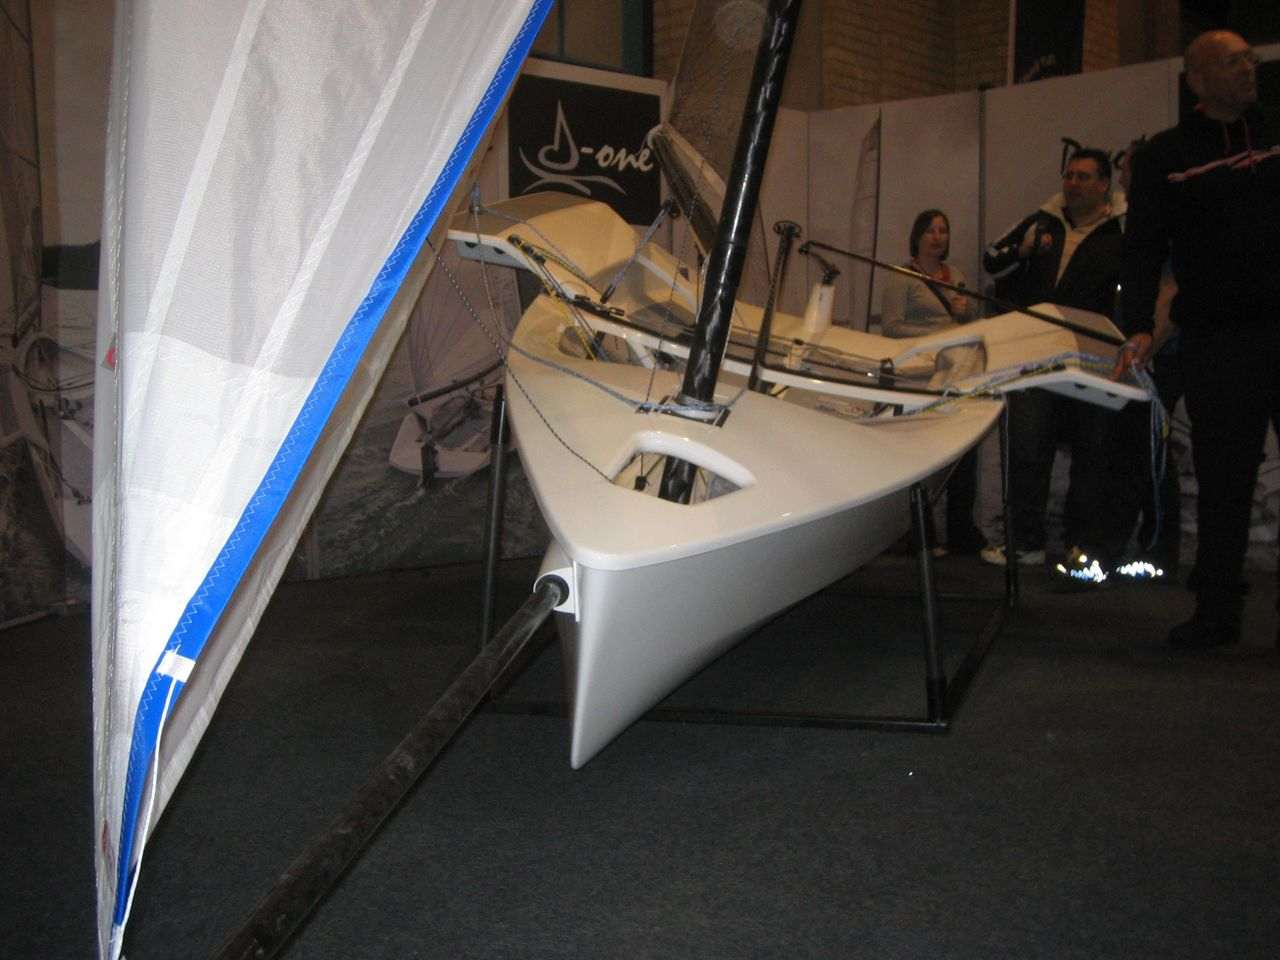 Devoti D-1 at the Dinghy Show in London